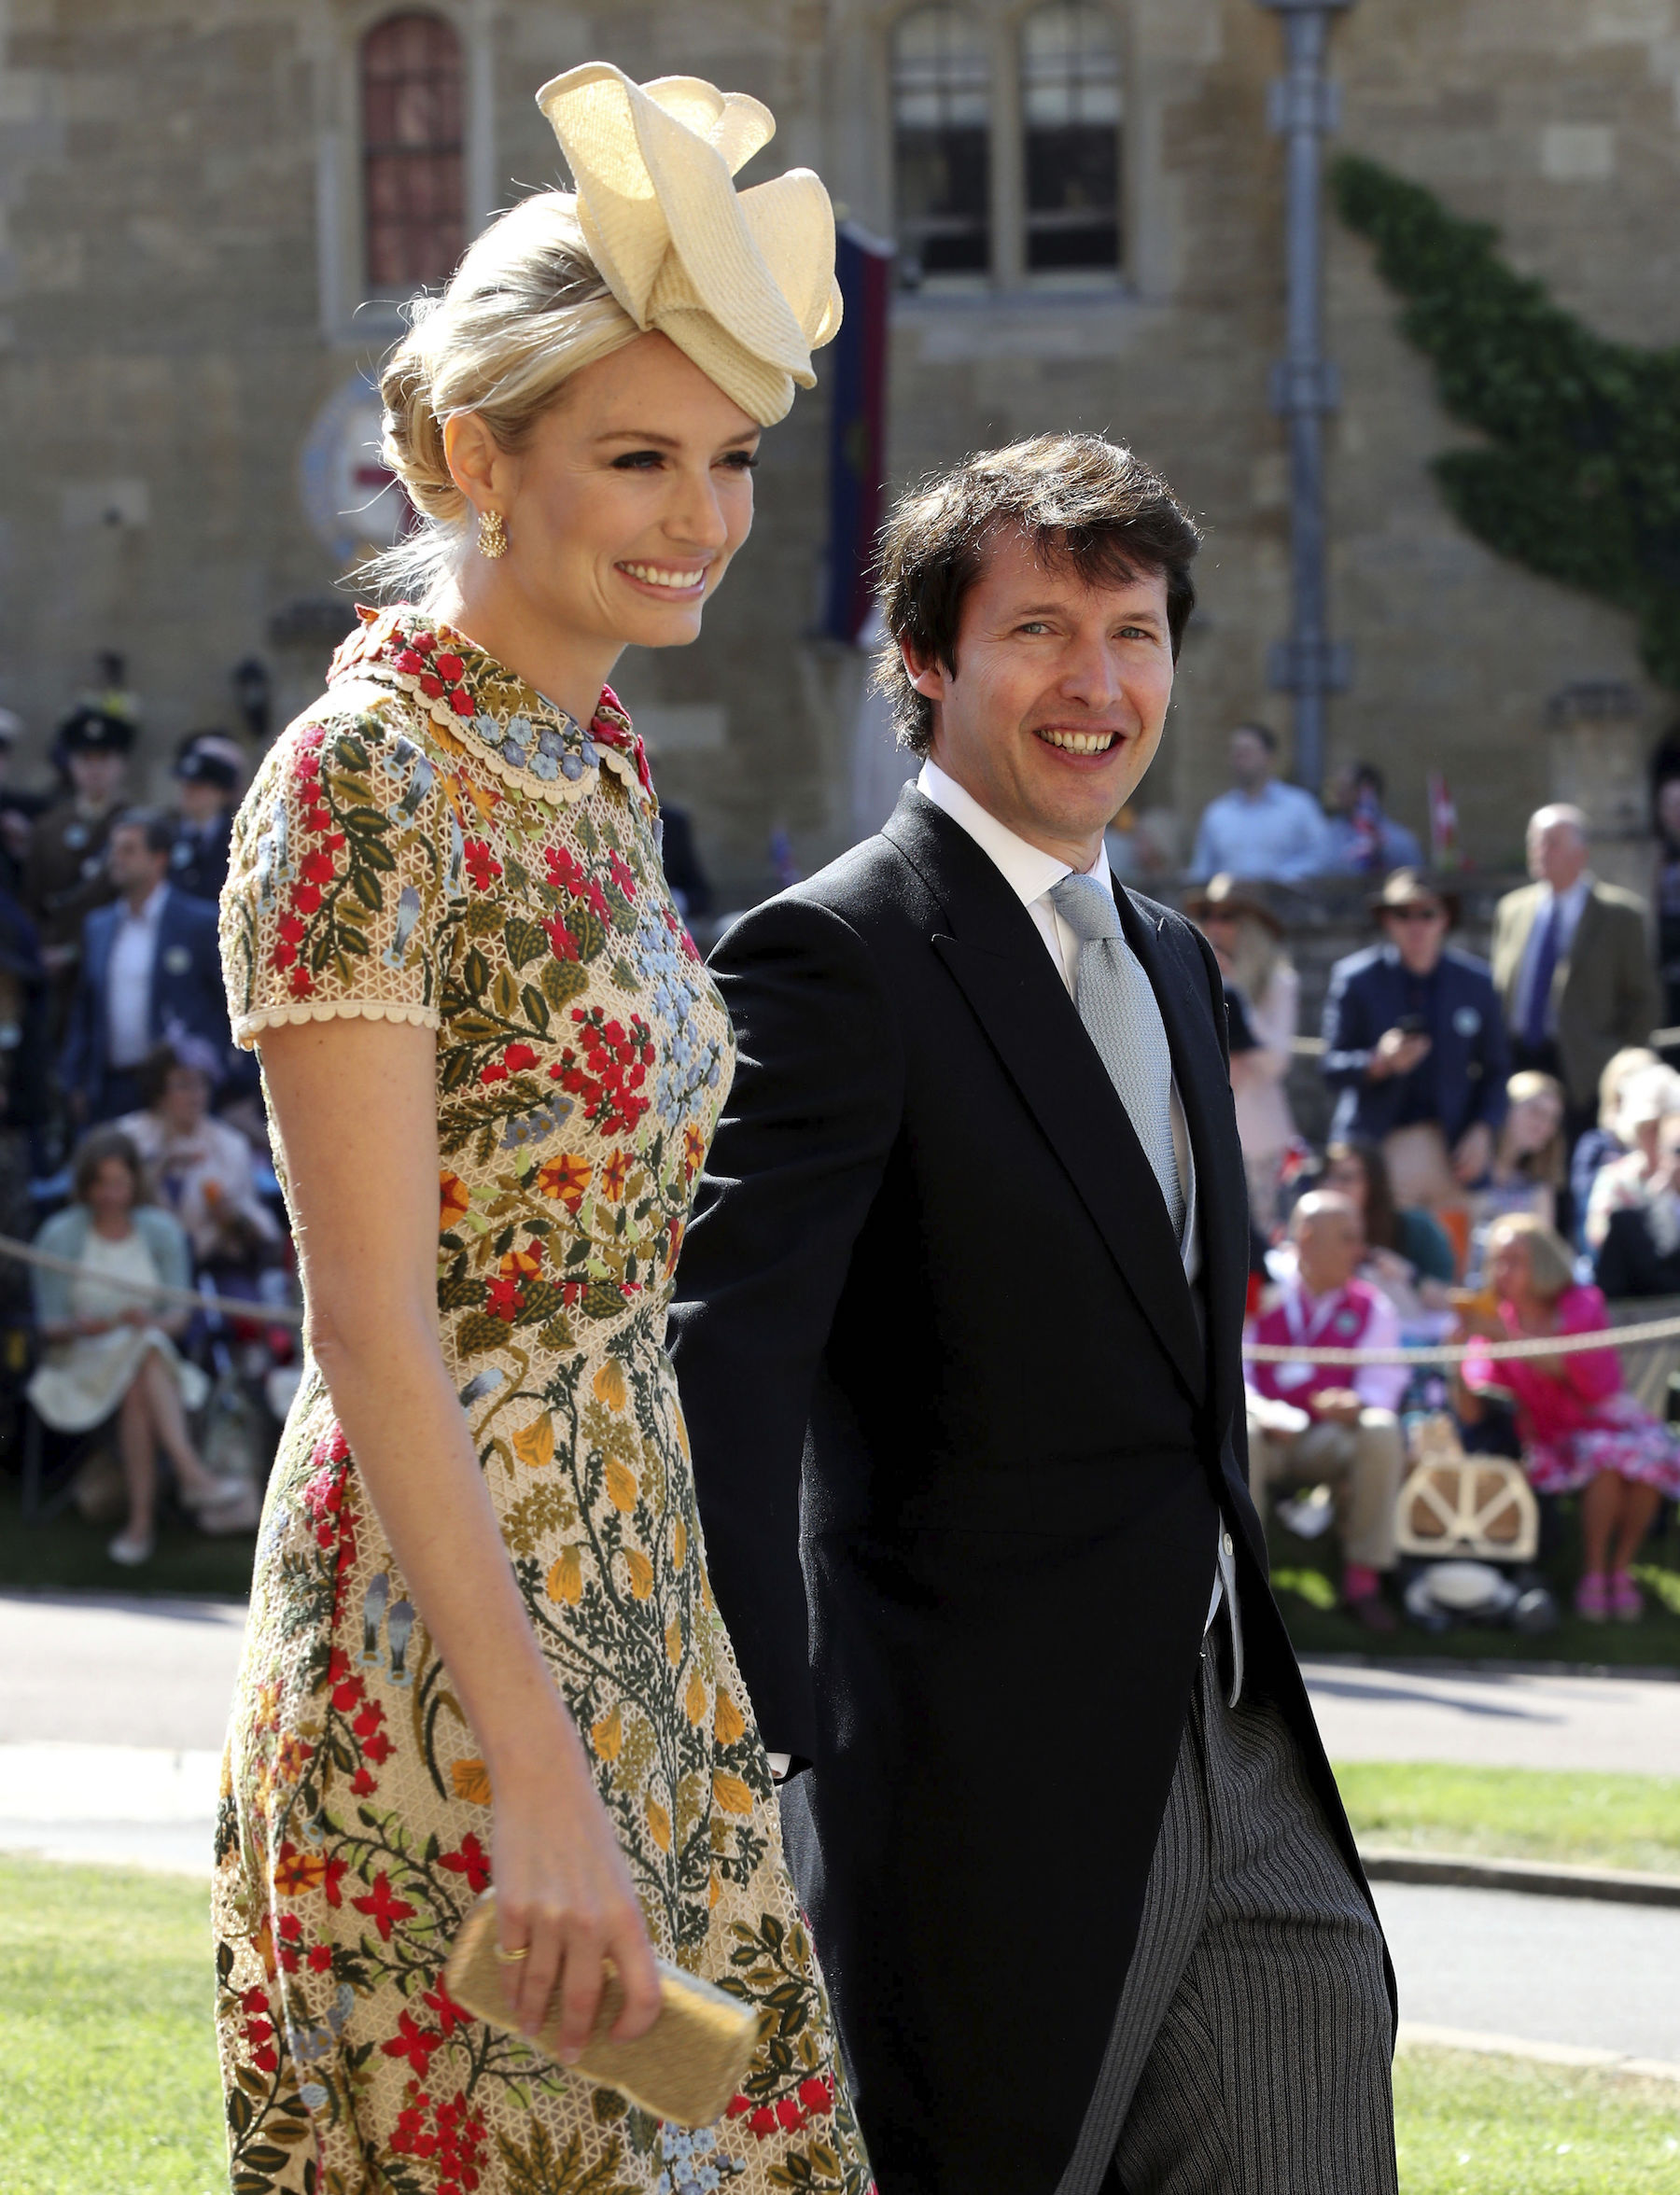 "<div class=""meta image-caption""><div class=""origin-logo origin-image ap""><span>AP</span></div><span class=""caption-text"">James Blunt and Sofia Wellesley arrive at St George's Chapel at Windsor Castle for the wedding of Meghan Markle and Prince Harry. (Chris Radburn/PA Wire)</span></div>"